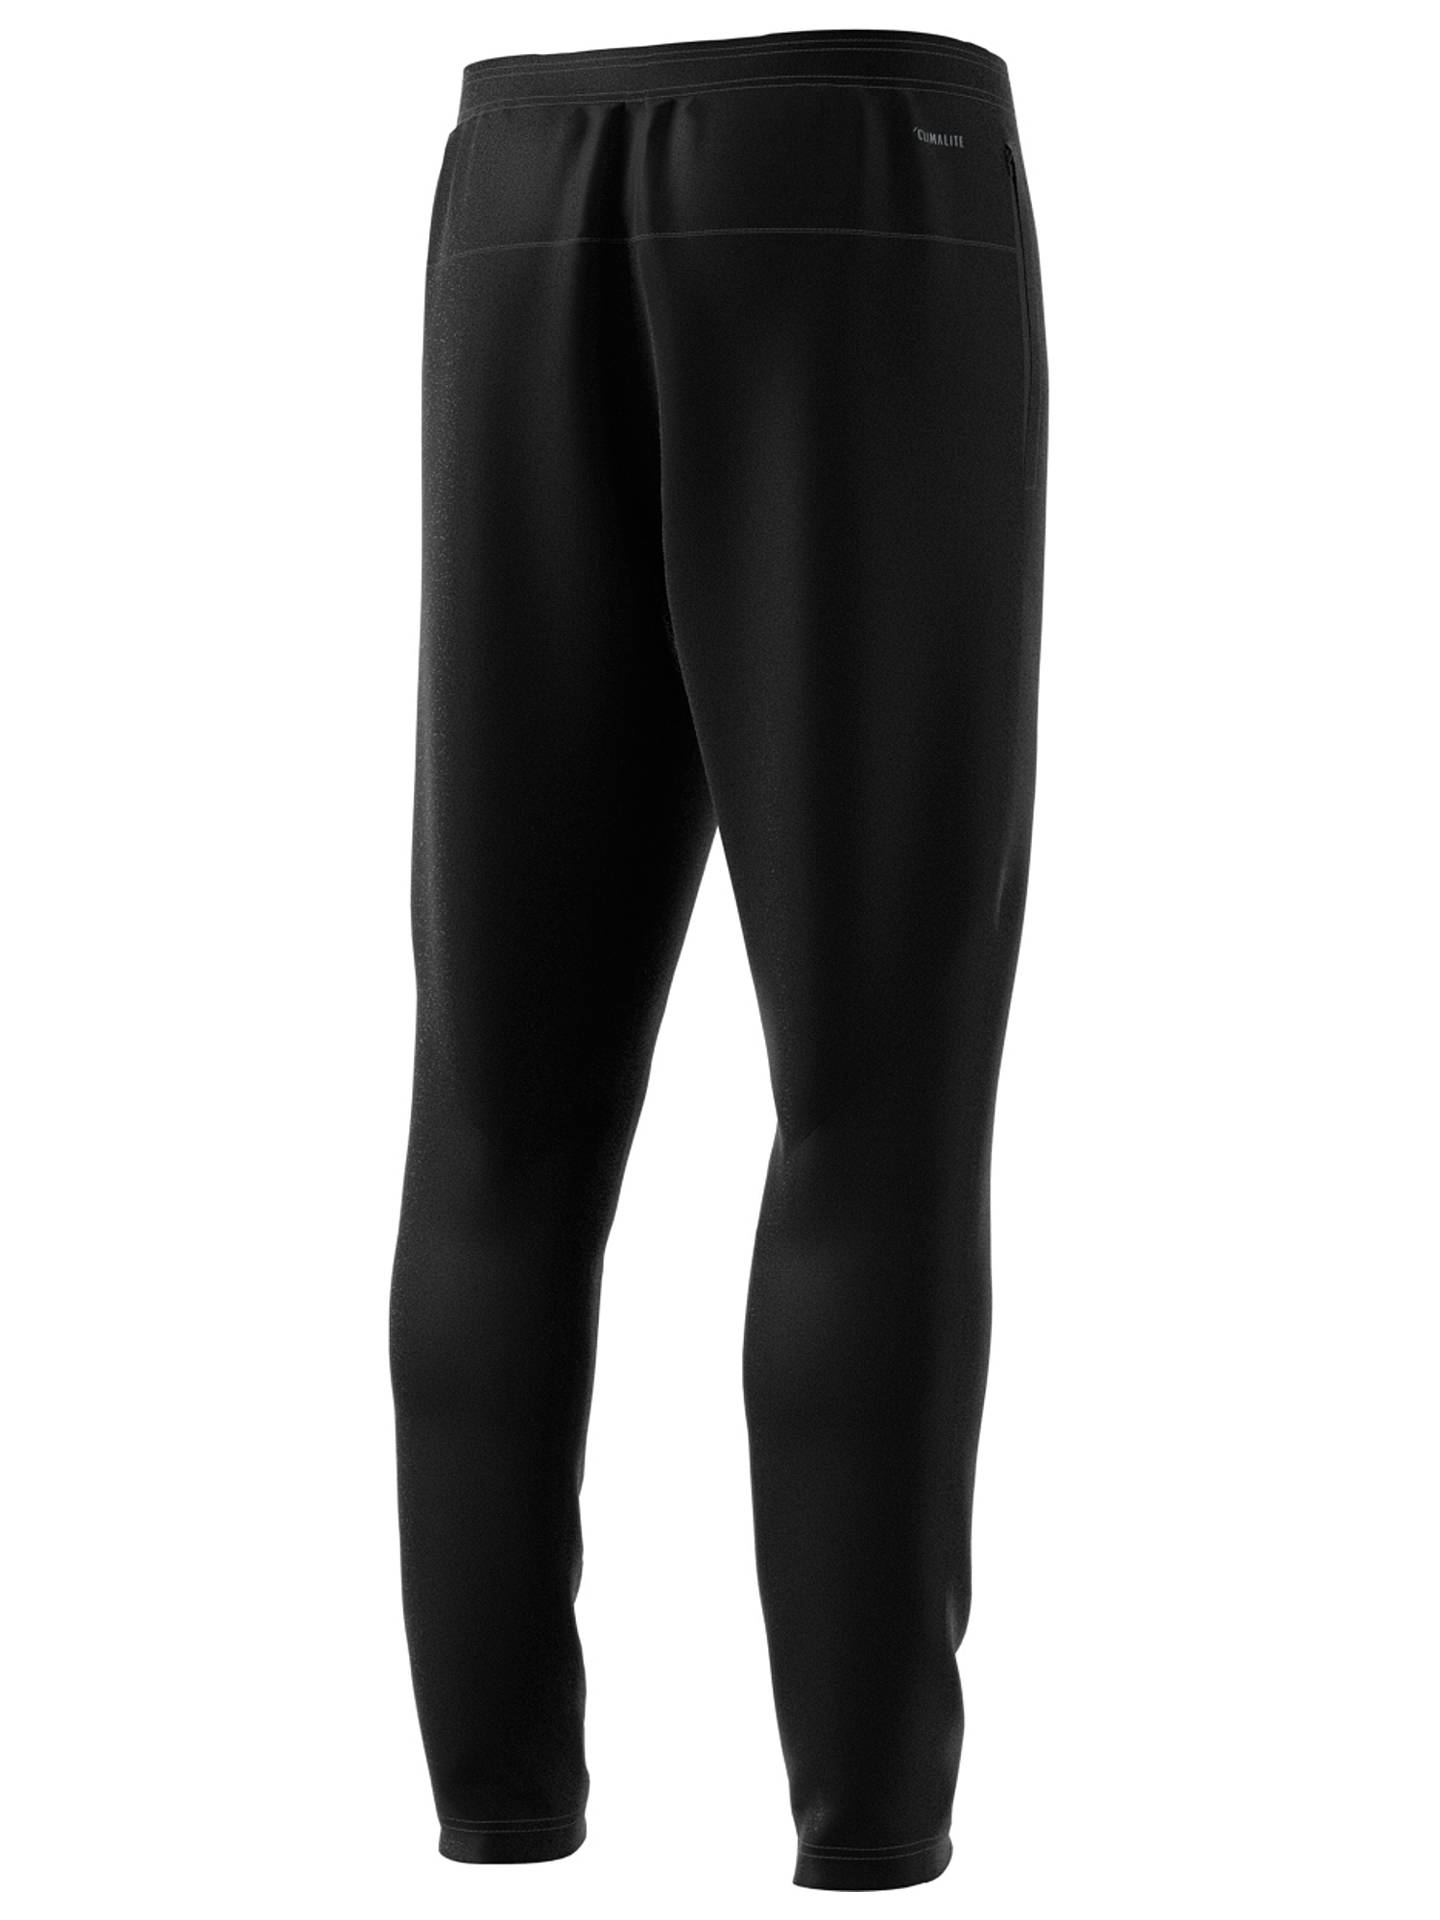 Buyadidas Climalite Workout Training Joggers, Black, S Online at johnlewis.com